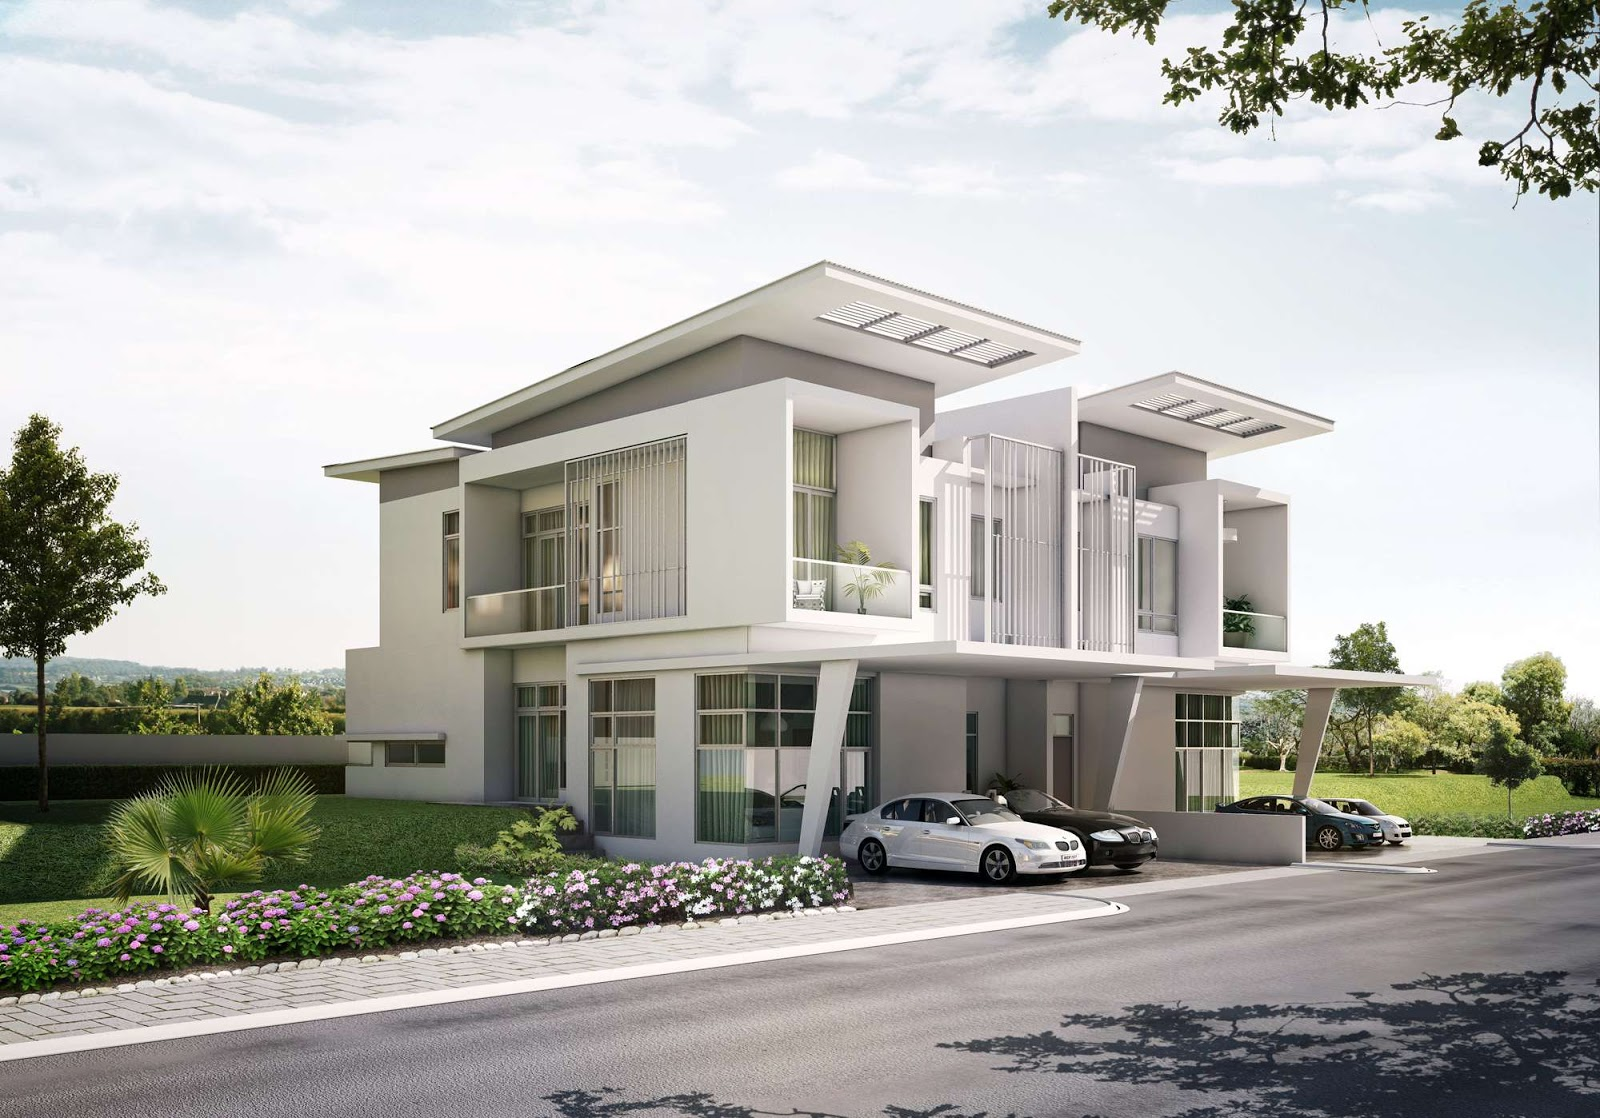 Singapore modern homes exterior designs home interior for Building exterior design